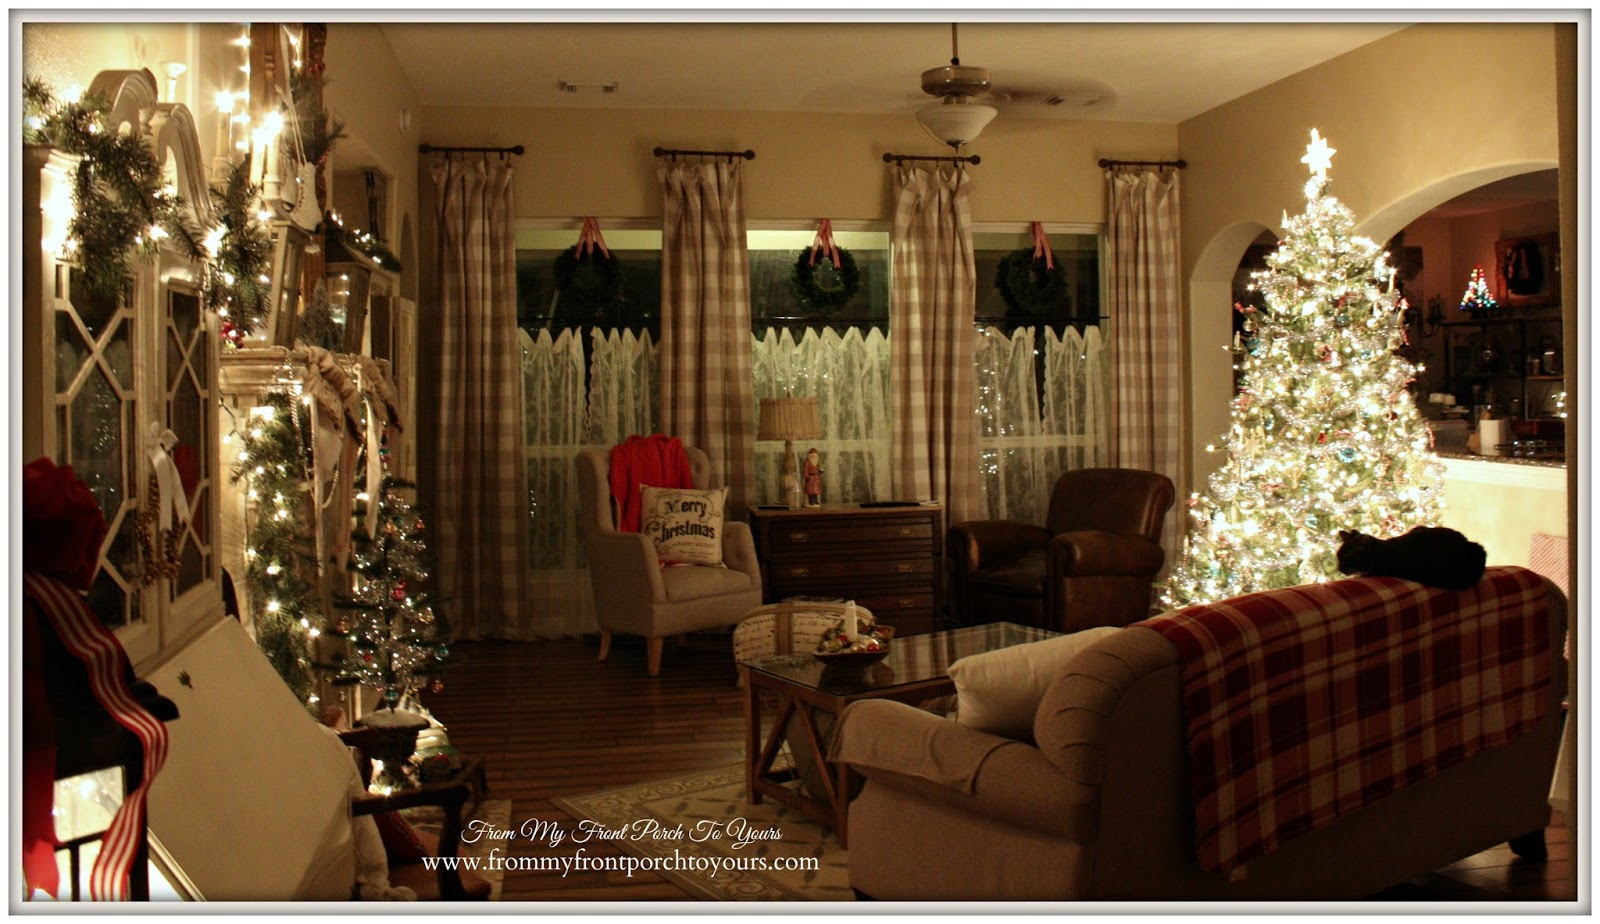 Farmhouse- Vintage -Christmas- Living Room-Christmas Lights At Night- From My Front Porch To Yours